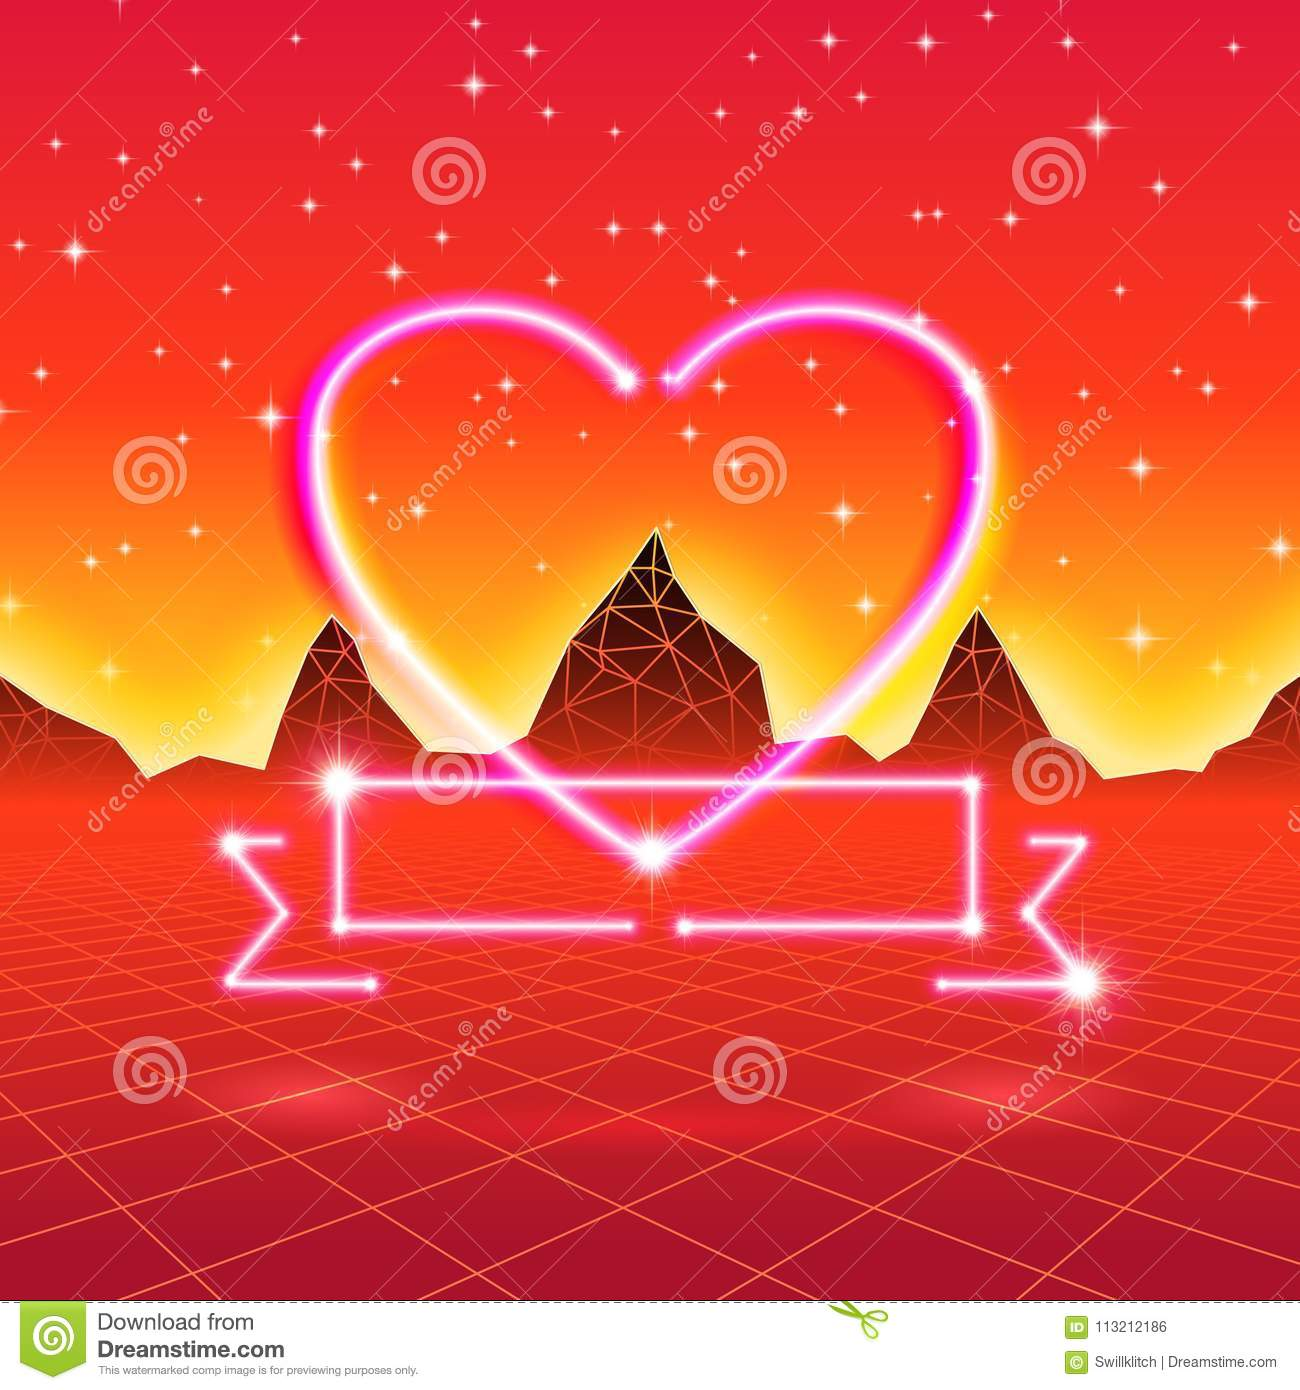 80s styled retro futuristic card with neon heart in computer world 80s styled retro futuristic card with neon heart in computer world buycottarizona Choice Image